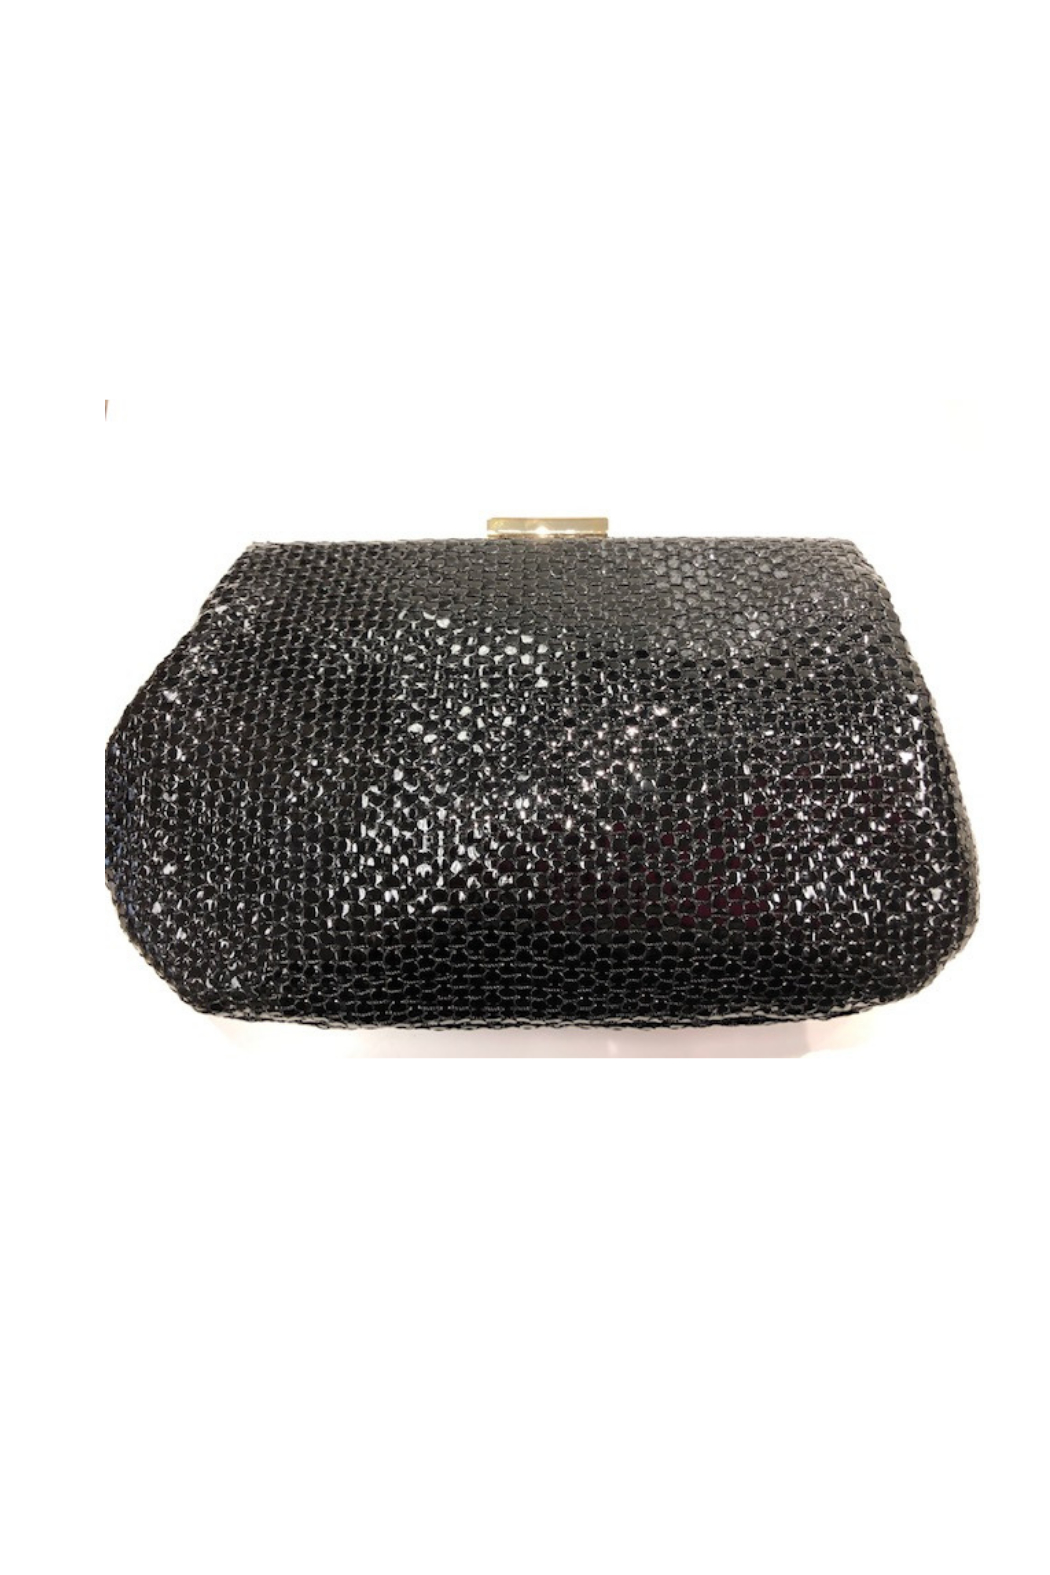 Sondra Roberts Textured Evening Bag With Circle Detail - Front Cropped Image